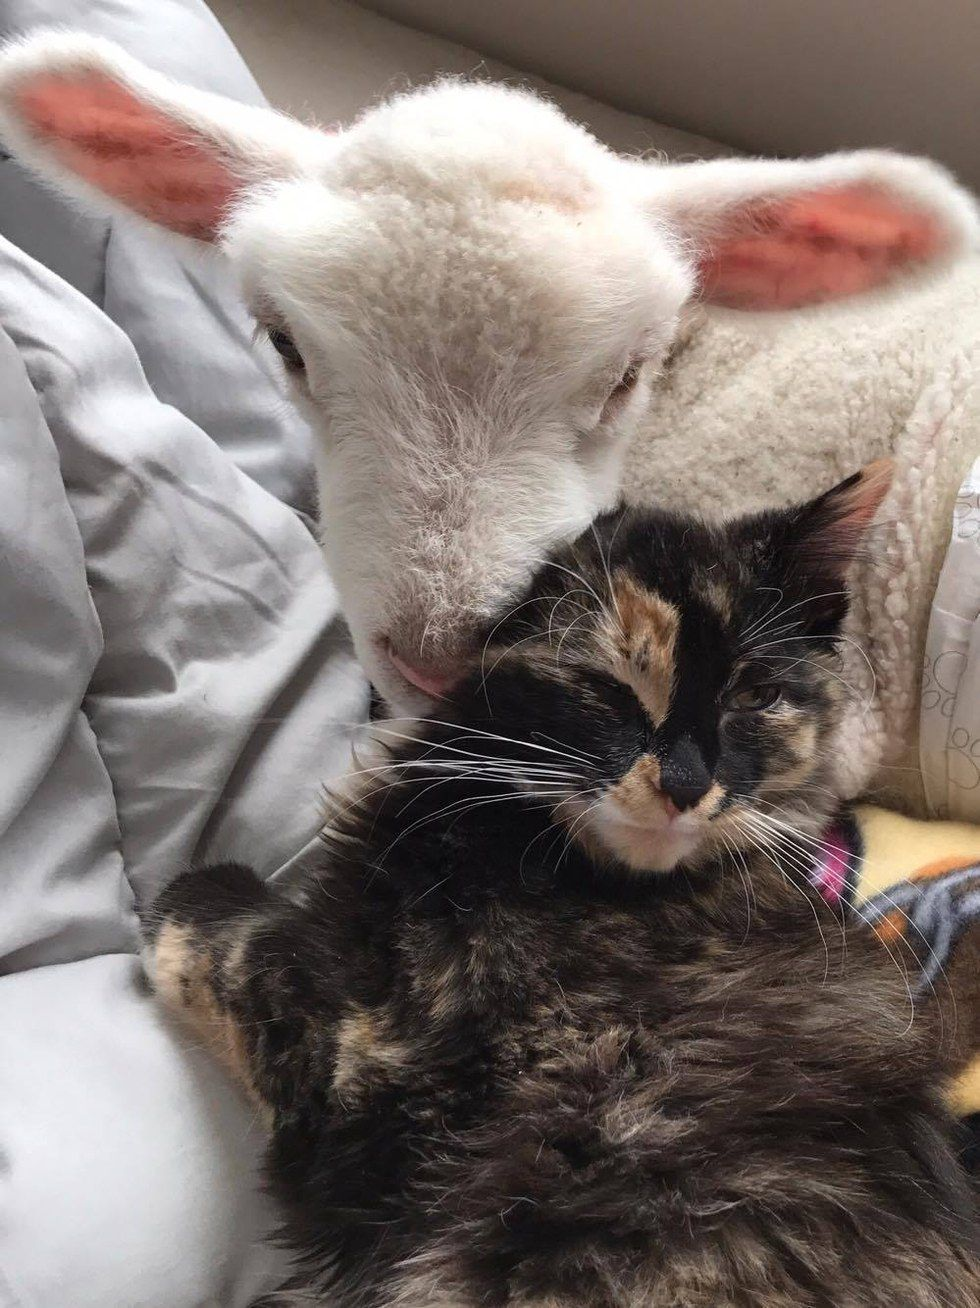 National Geographic Rescue Cat Helps Save Sick Little Lambs Life Goodreads Rescue Cat Helps Save Sick Little Lambs Life Animal Loveunlikely